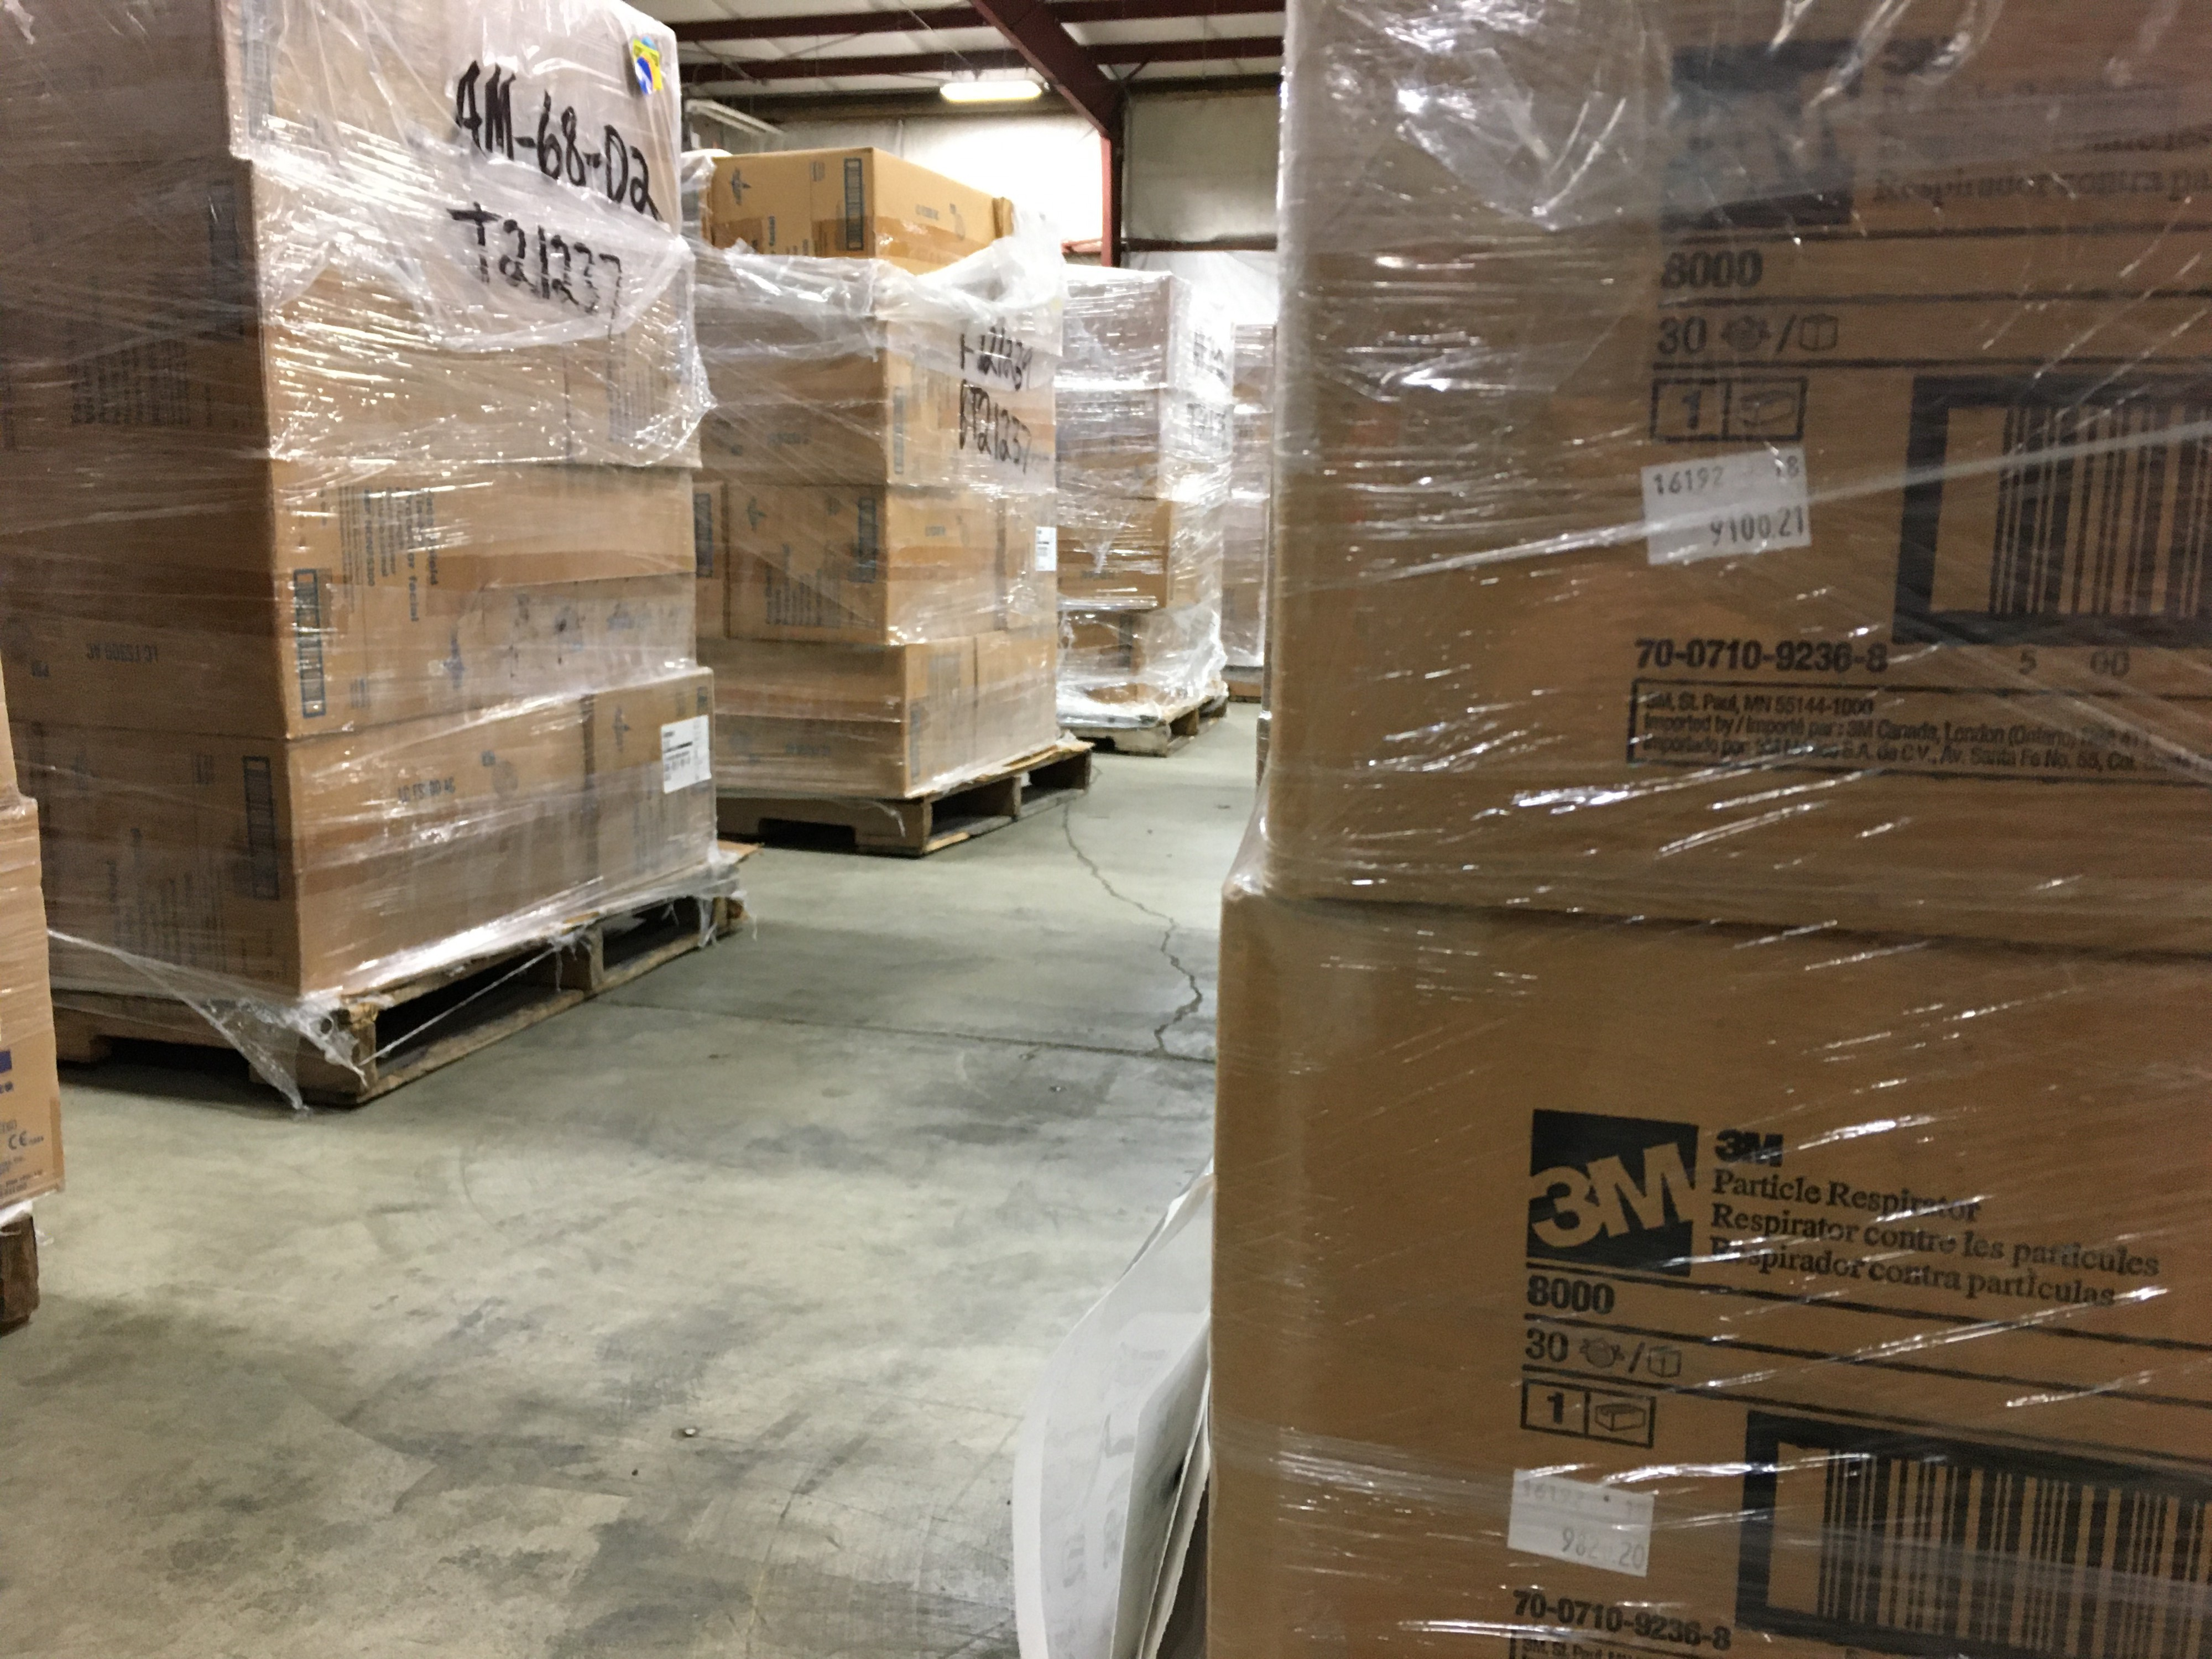 Row of boxes full of PPE.